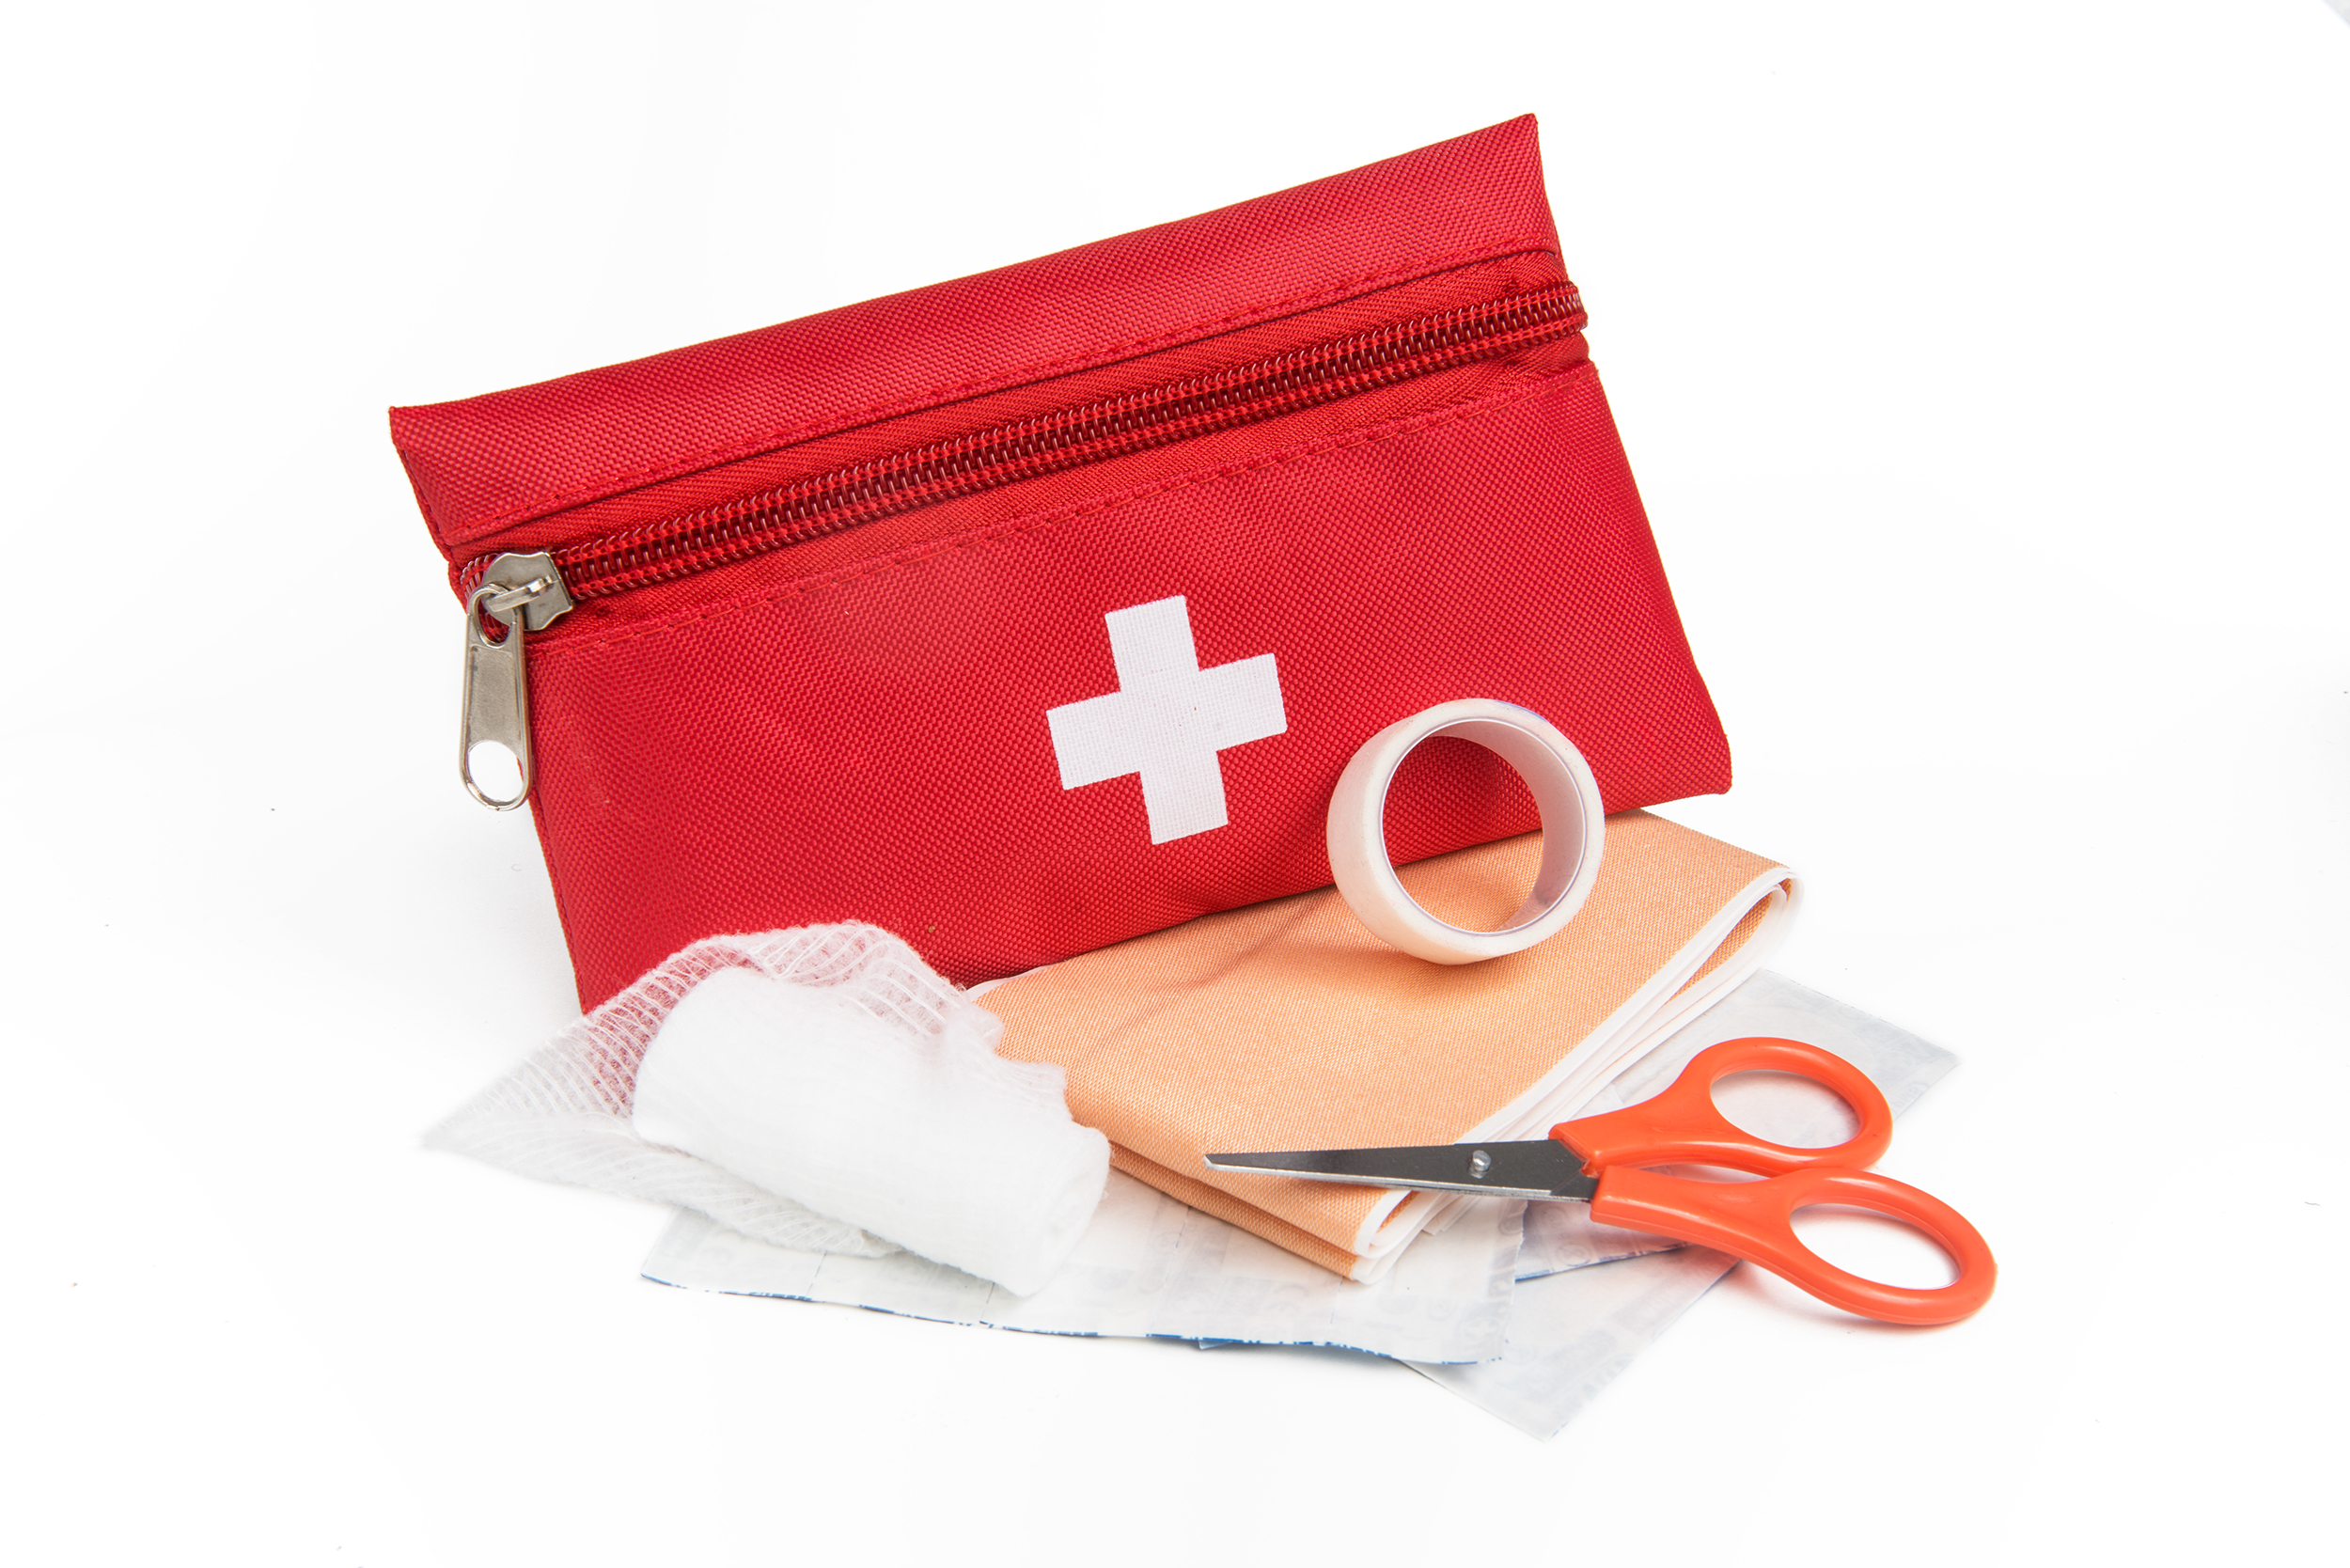 """ First Aid Kit "" from  www.directline.com   (  CC BY 2.0  )"